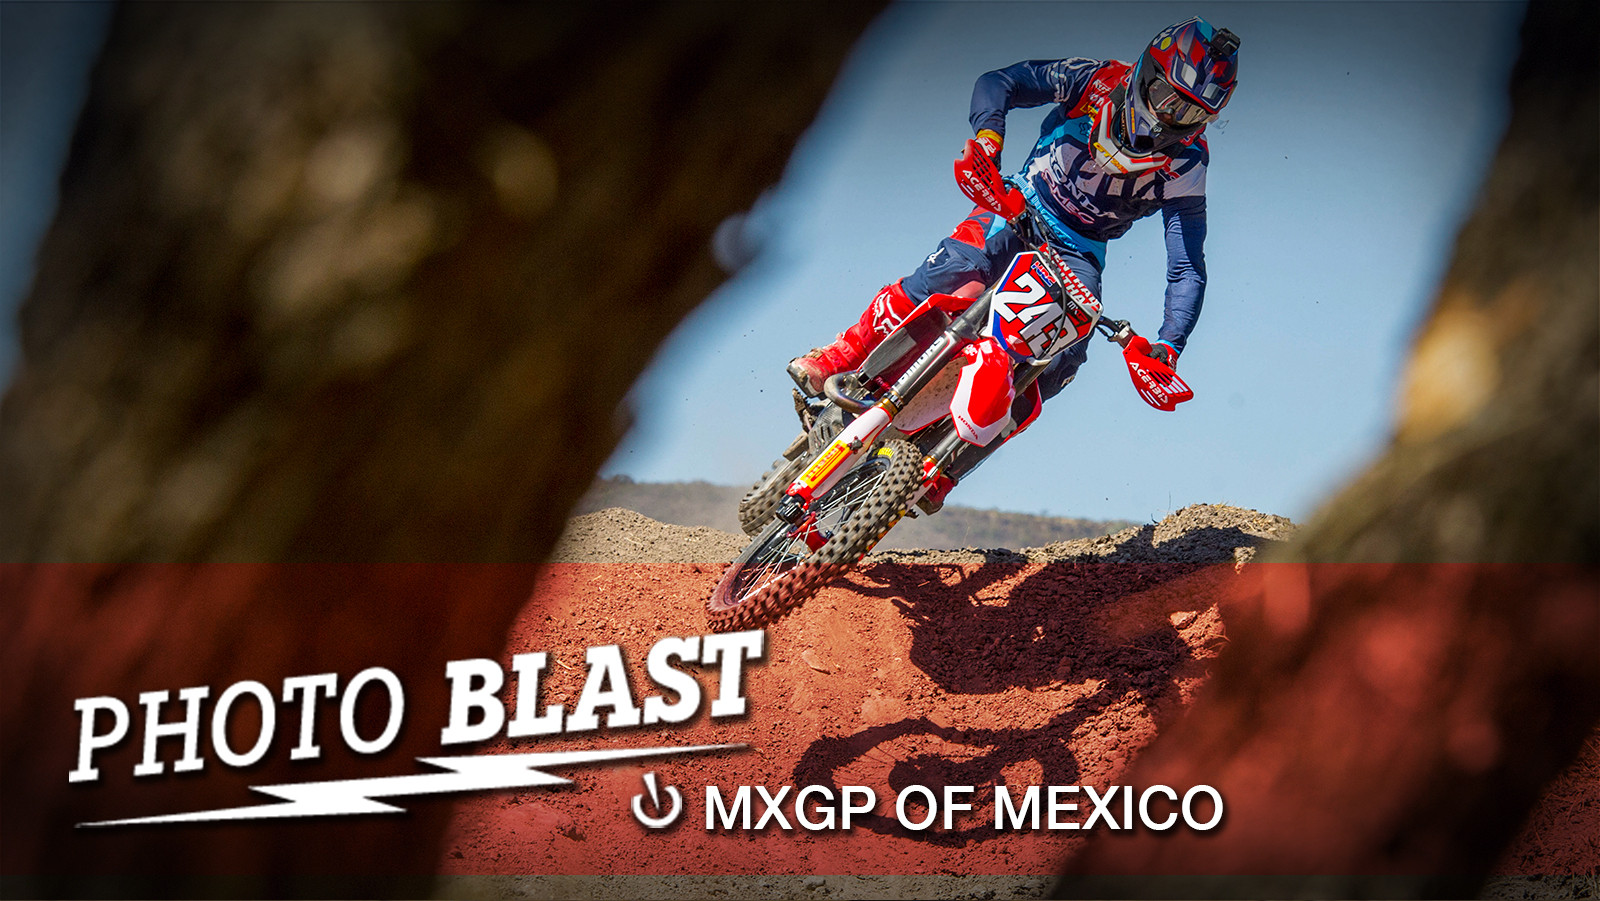 Photo Blast: MXGP of Mexico - Tim Gajser - Photo Blast: 2017 MXGP of Mexico - Motocross Pictures - Vital MX